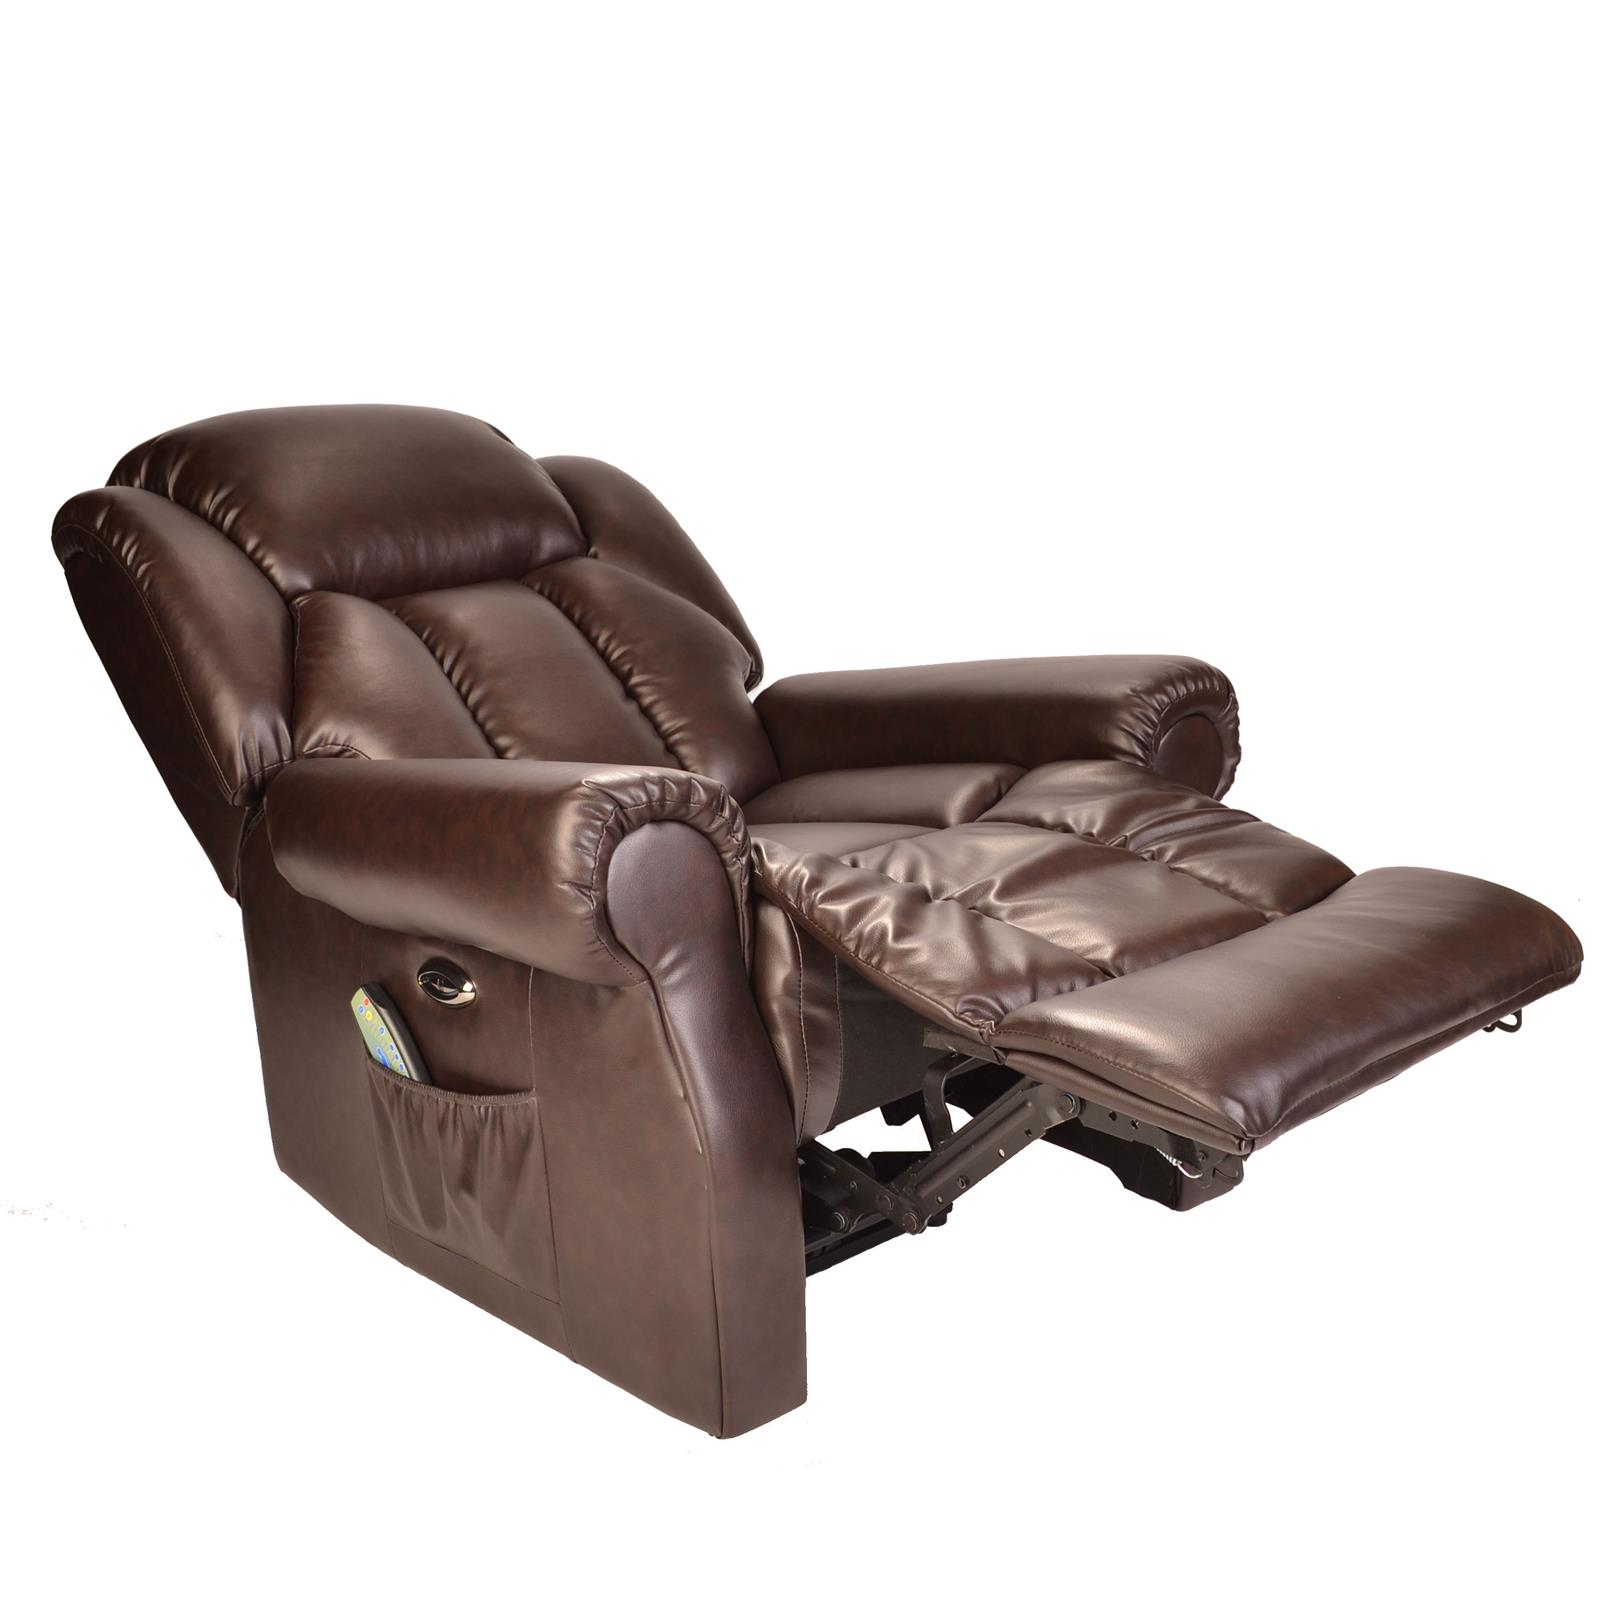 electric recliner chairs repairs electric recliner chair repair smart choice repair center